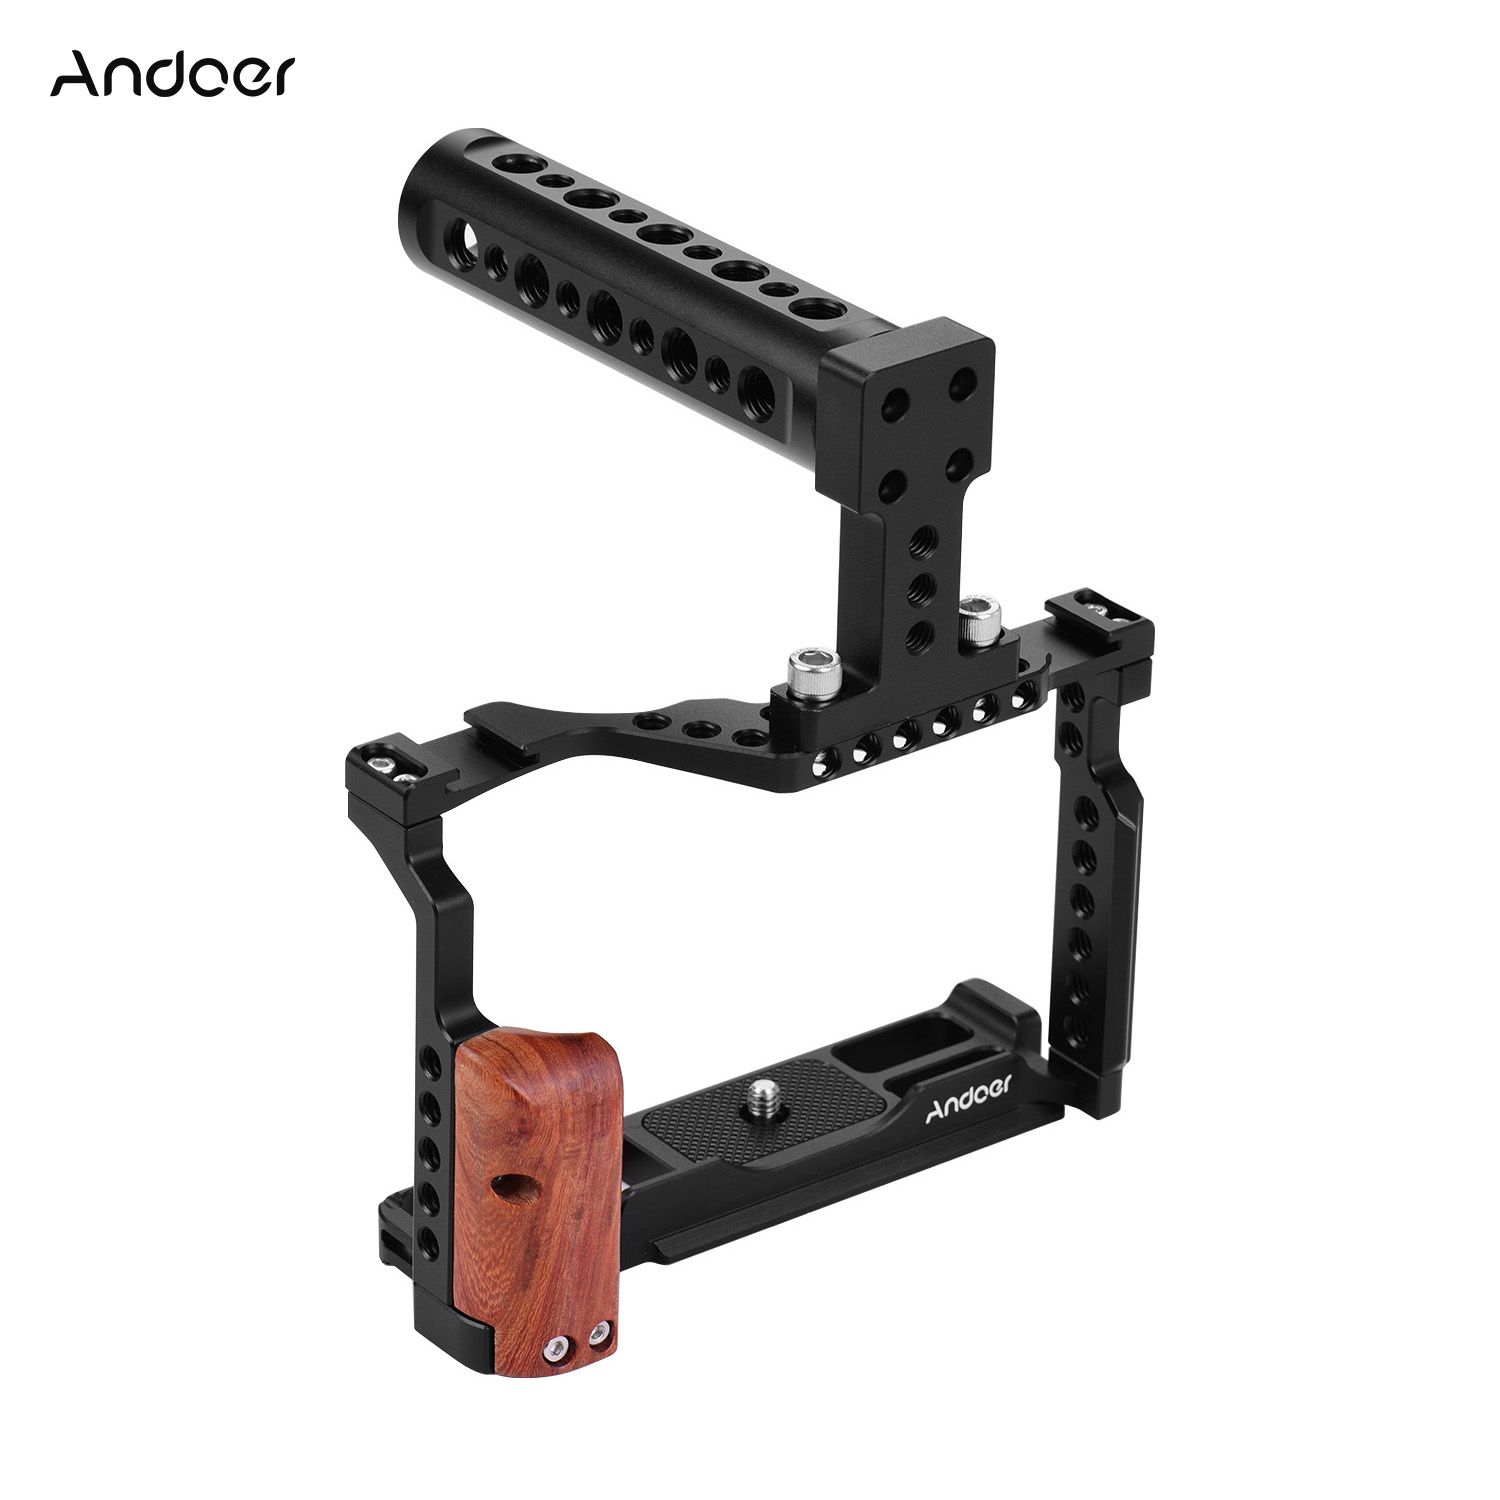 Cage Top-Handle-Kit Video-Camera Andoer X-T3/X-T2 Shoe-Mount Aluminum-Alloy with Dual-Cold